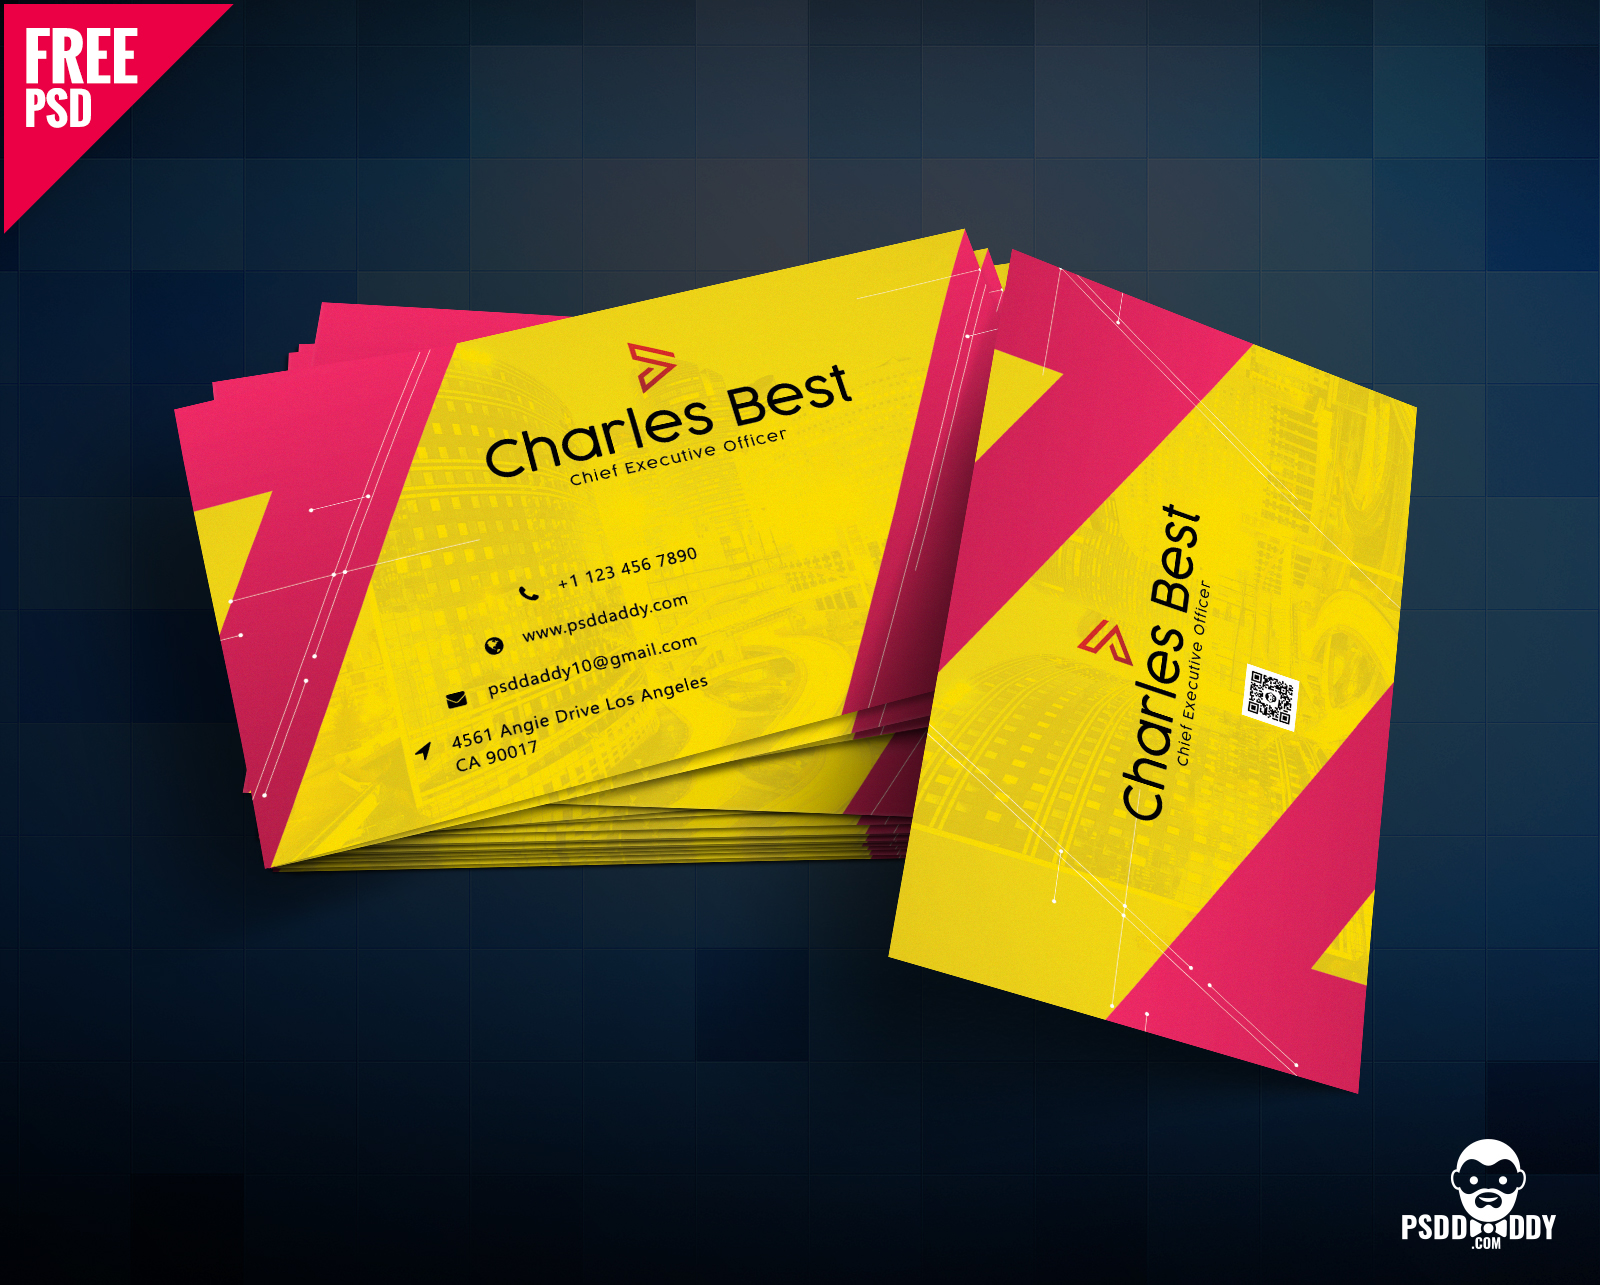 100 free business card psd templates creative business card template psd free download accmission Image collections